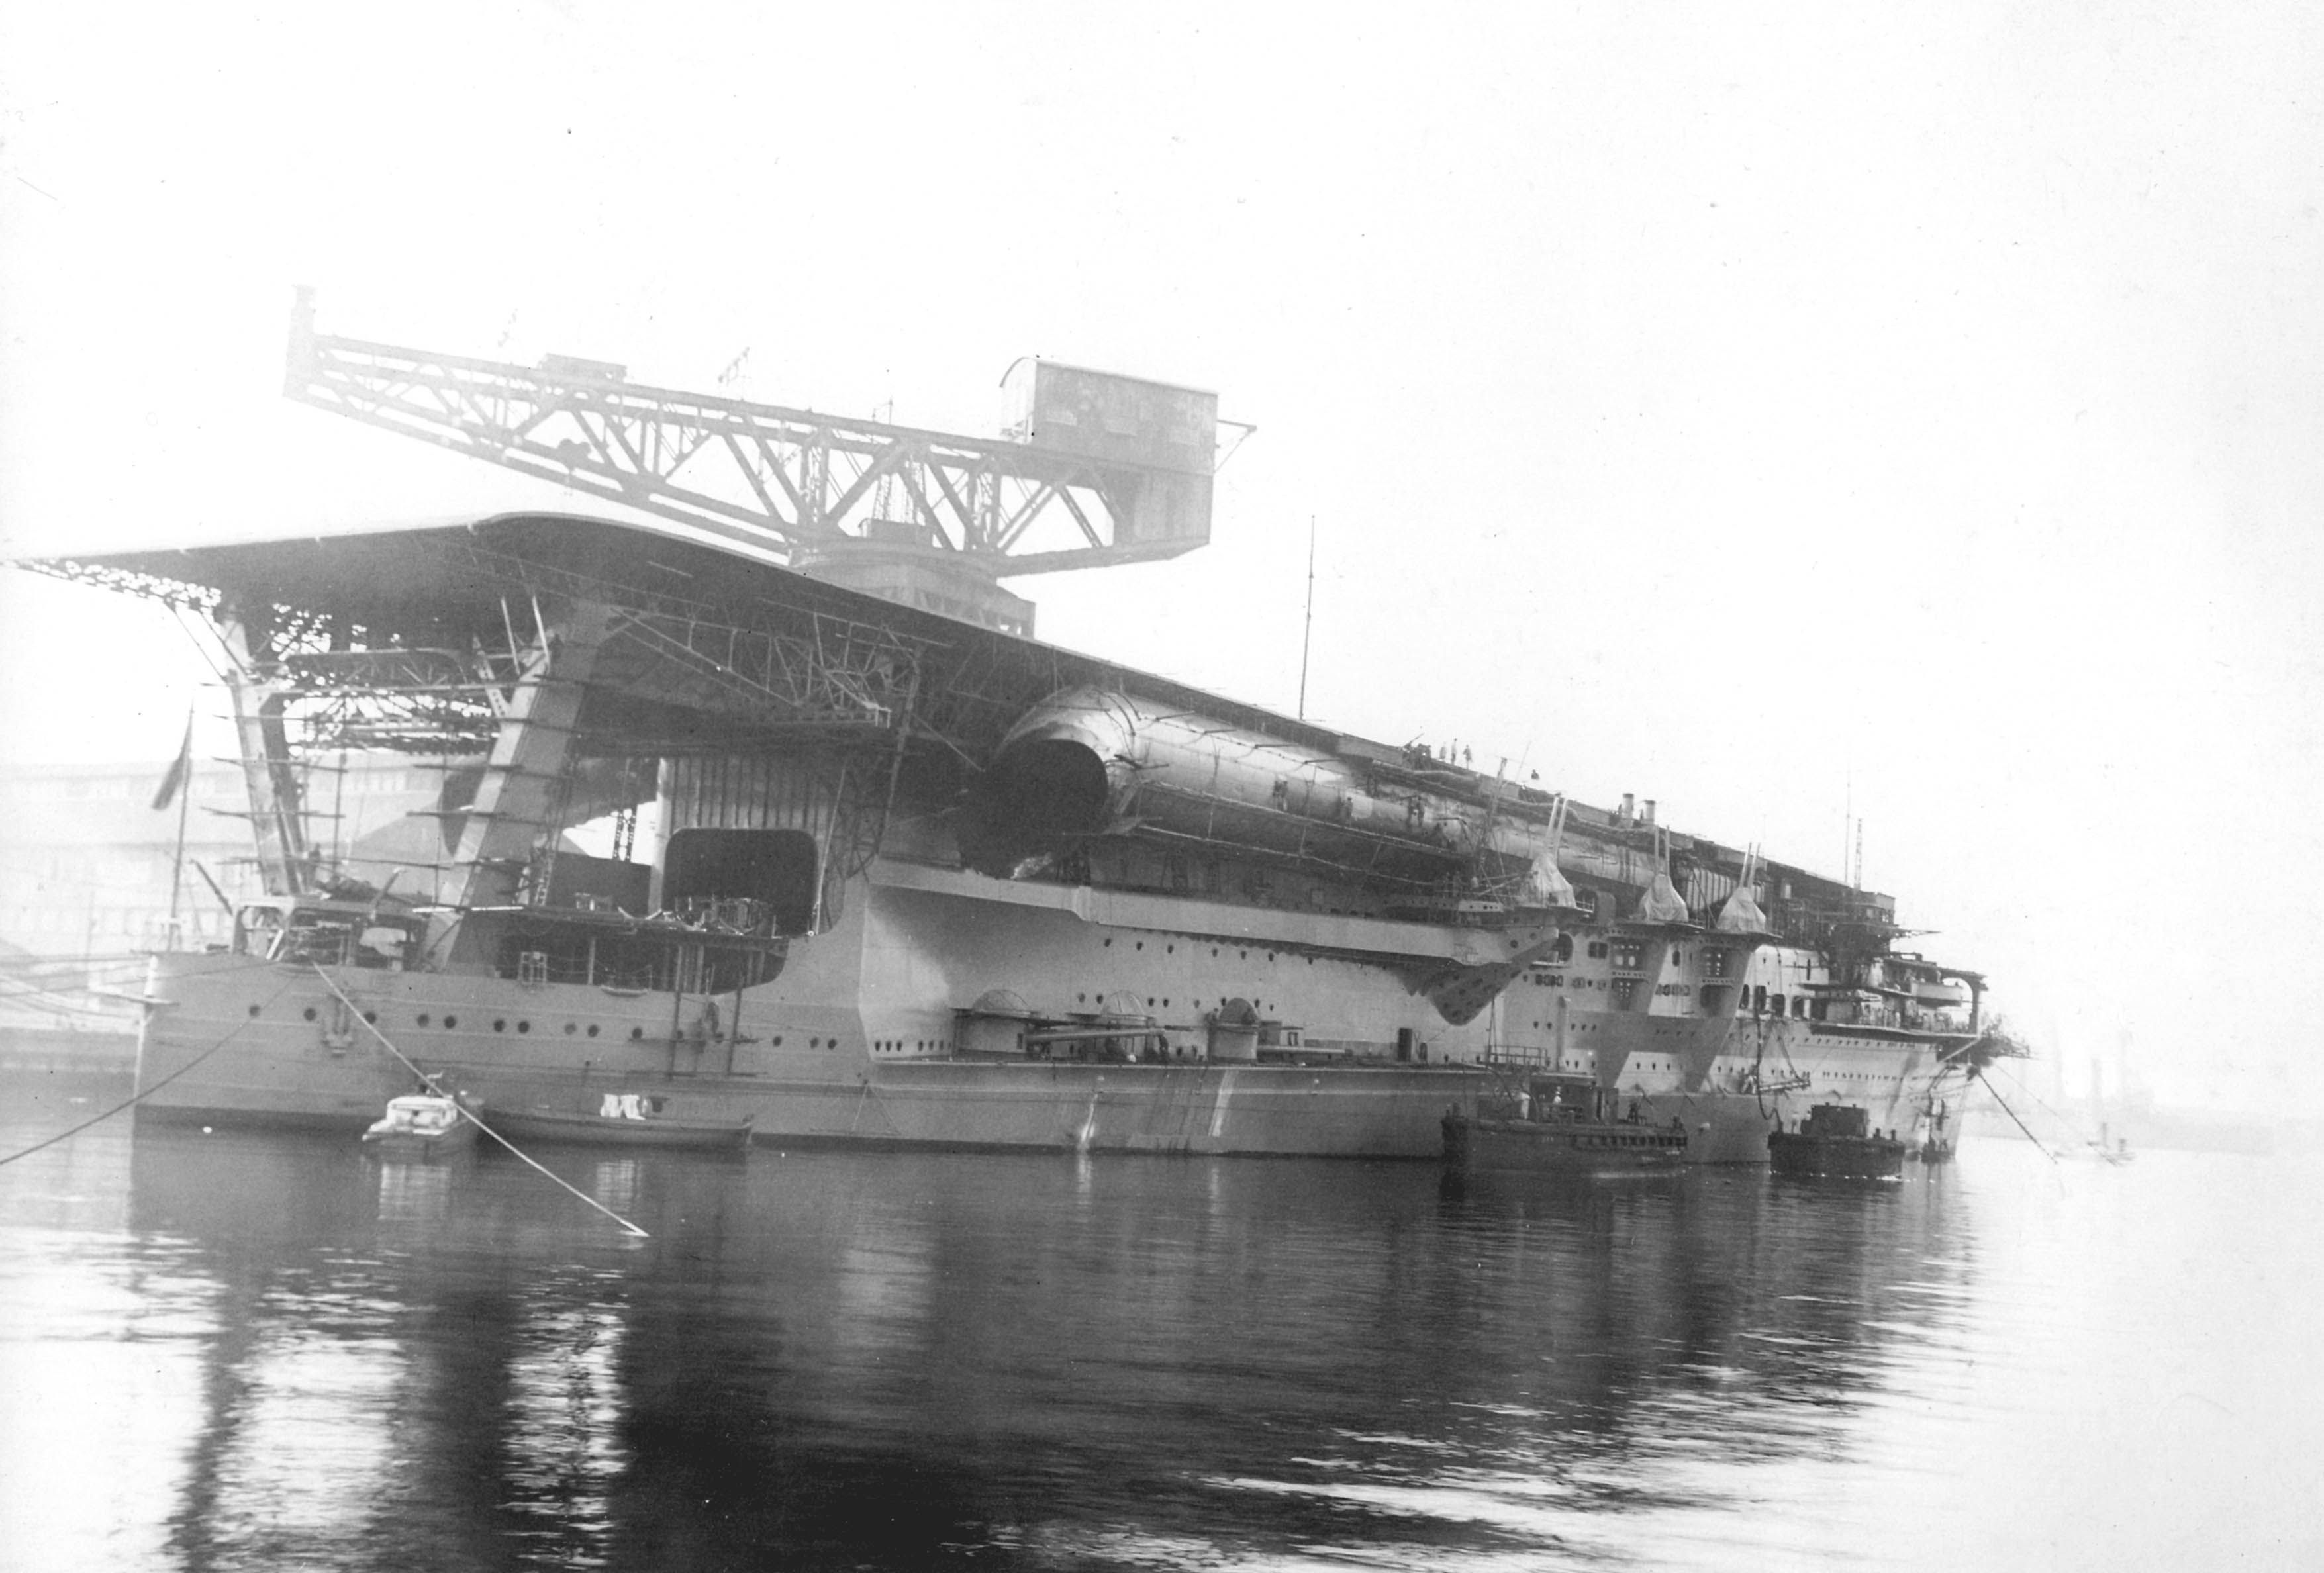 Japanese Navy Aircraft Carrier Kaga being fitted out in 1928. Note the long funnel below the flight deck and the three 8-inch guns in casemates